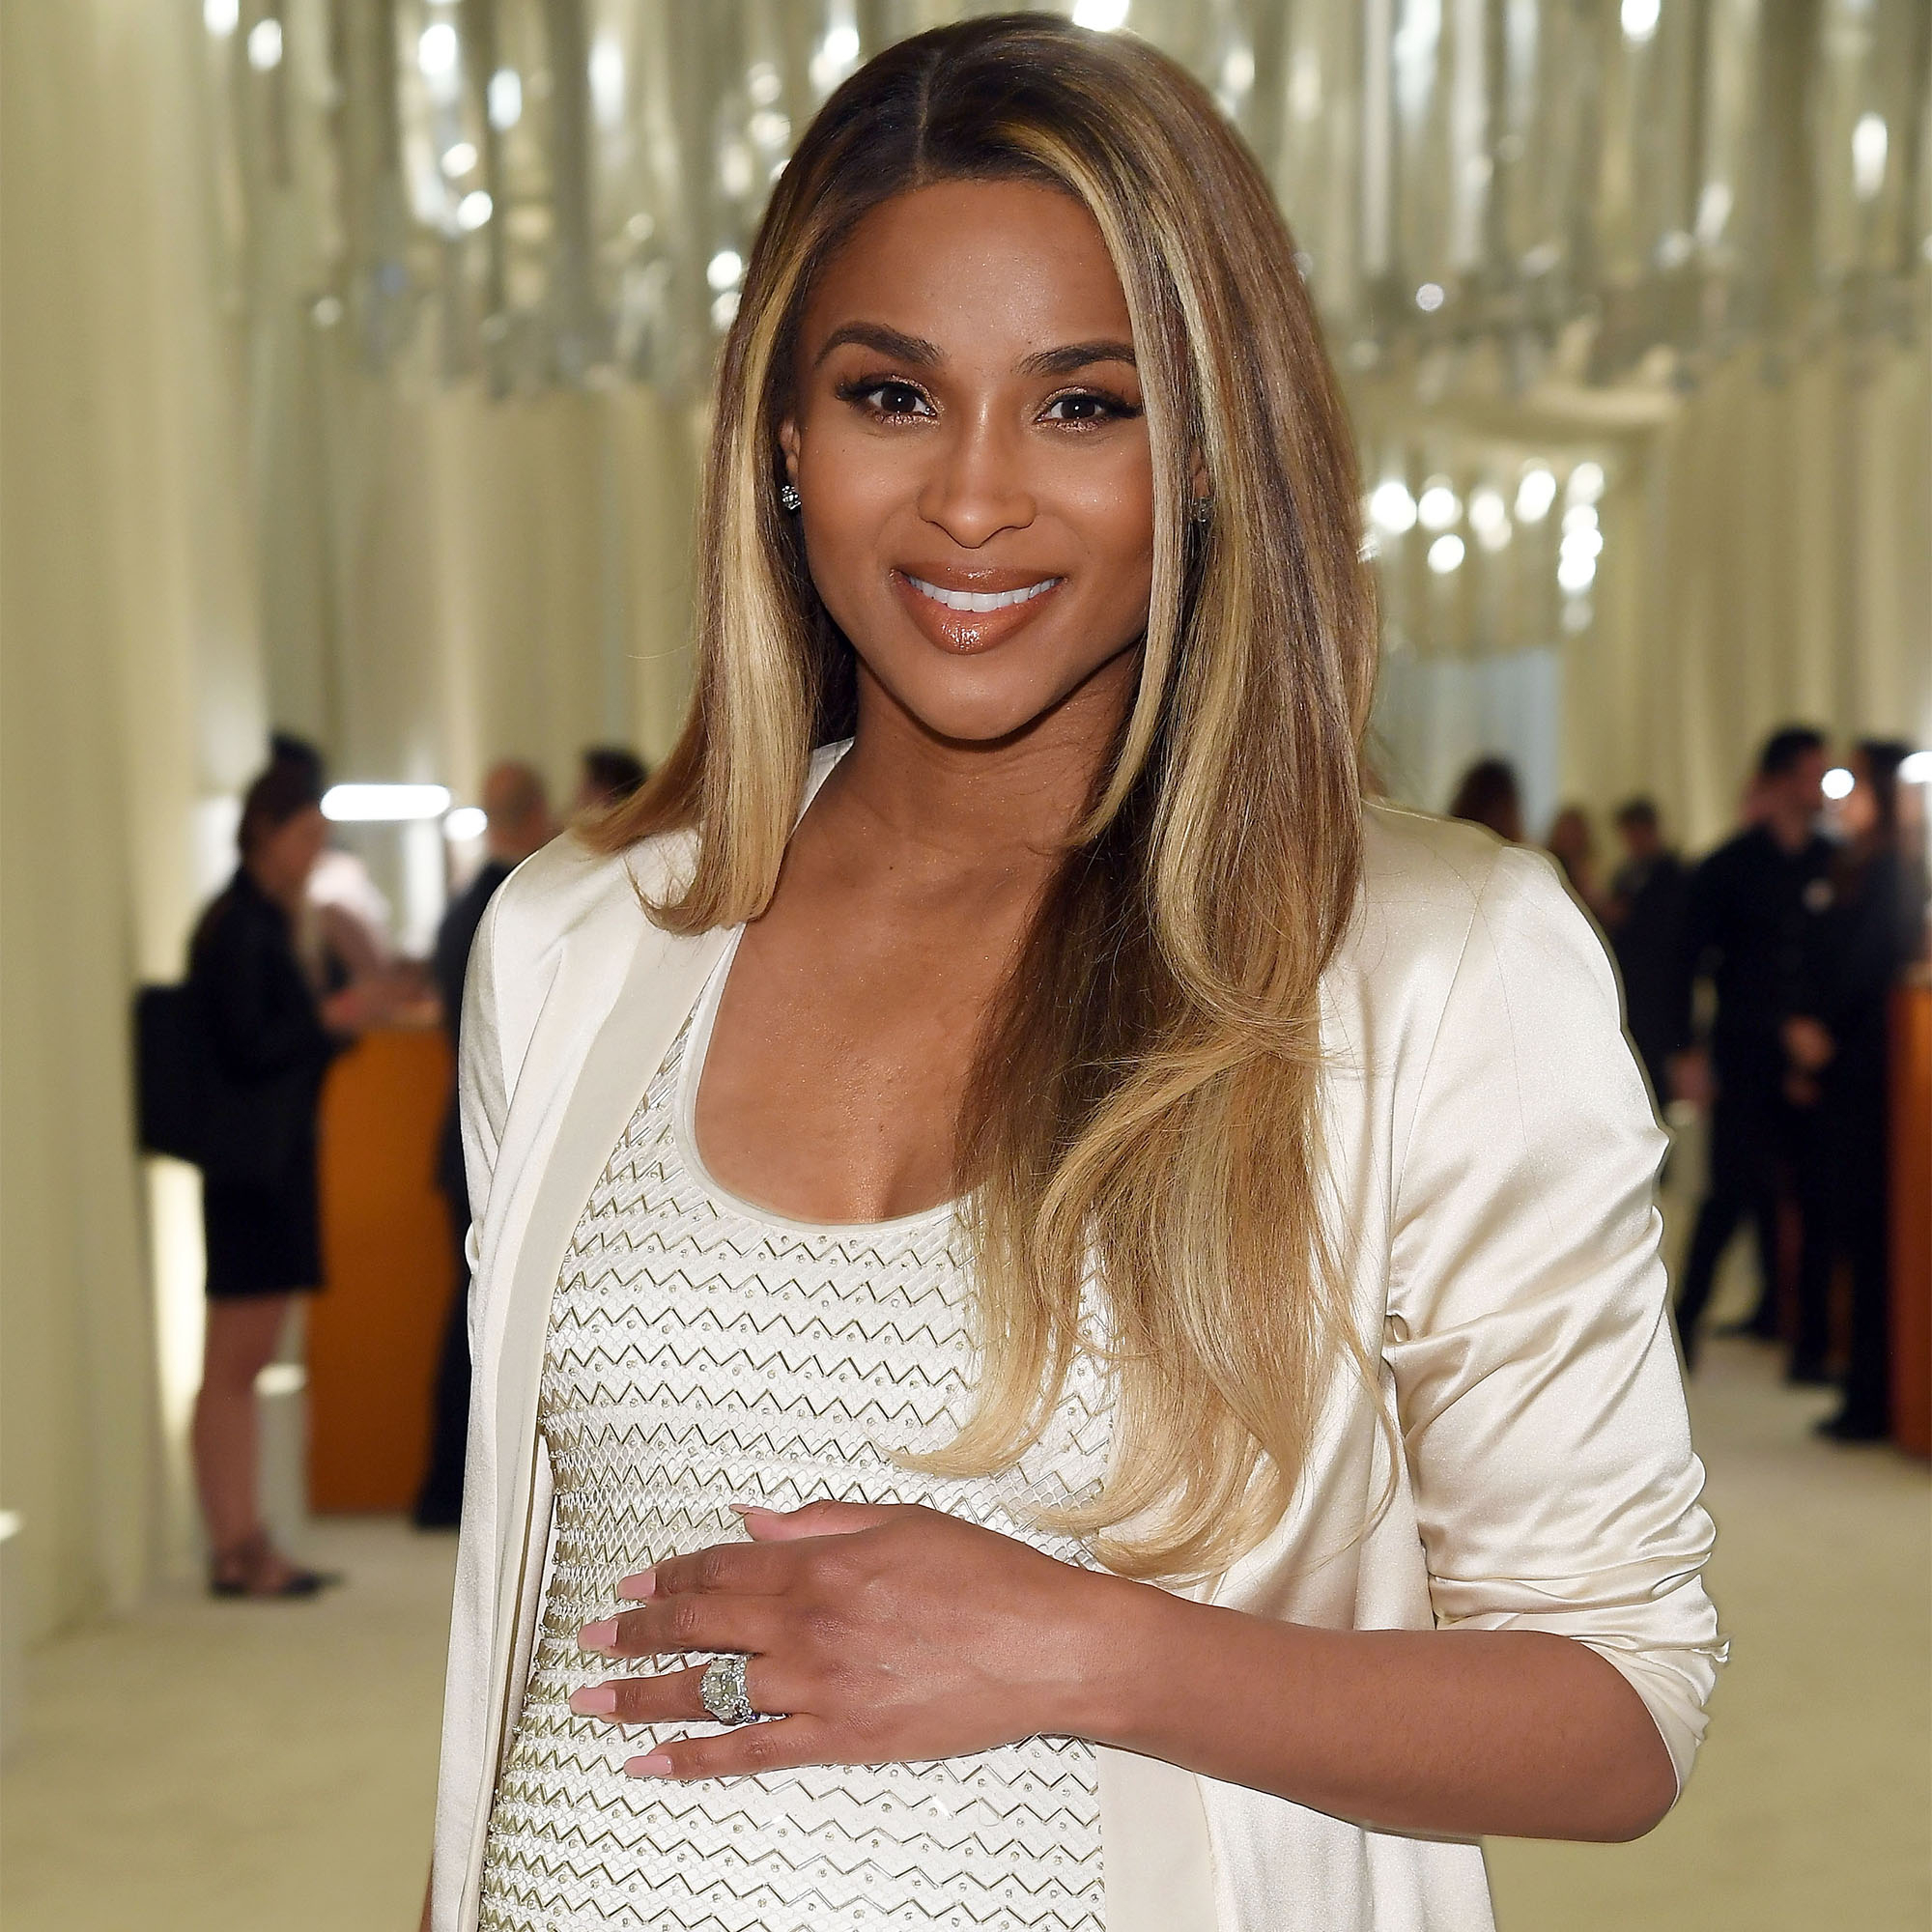 Ciara Shares Photo of Son Future Jr. Wearing 'Big Brother' Bracelet While Visiting Baby Sienna